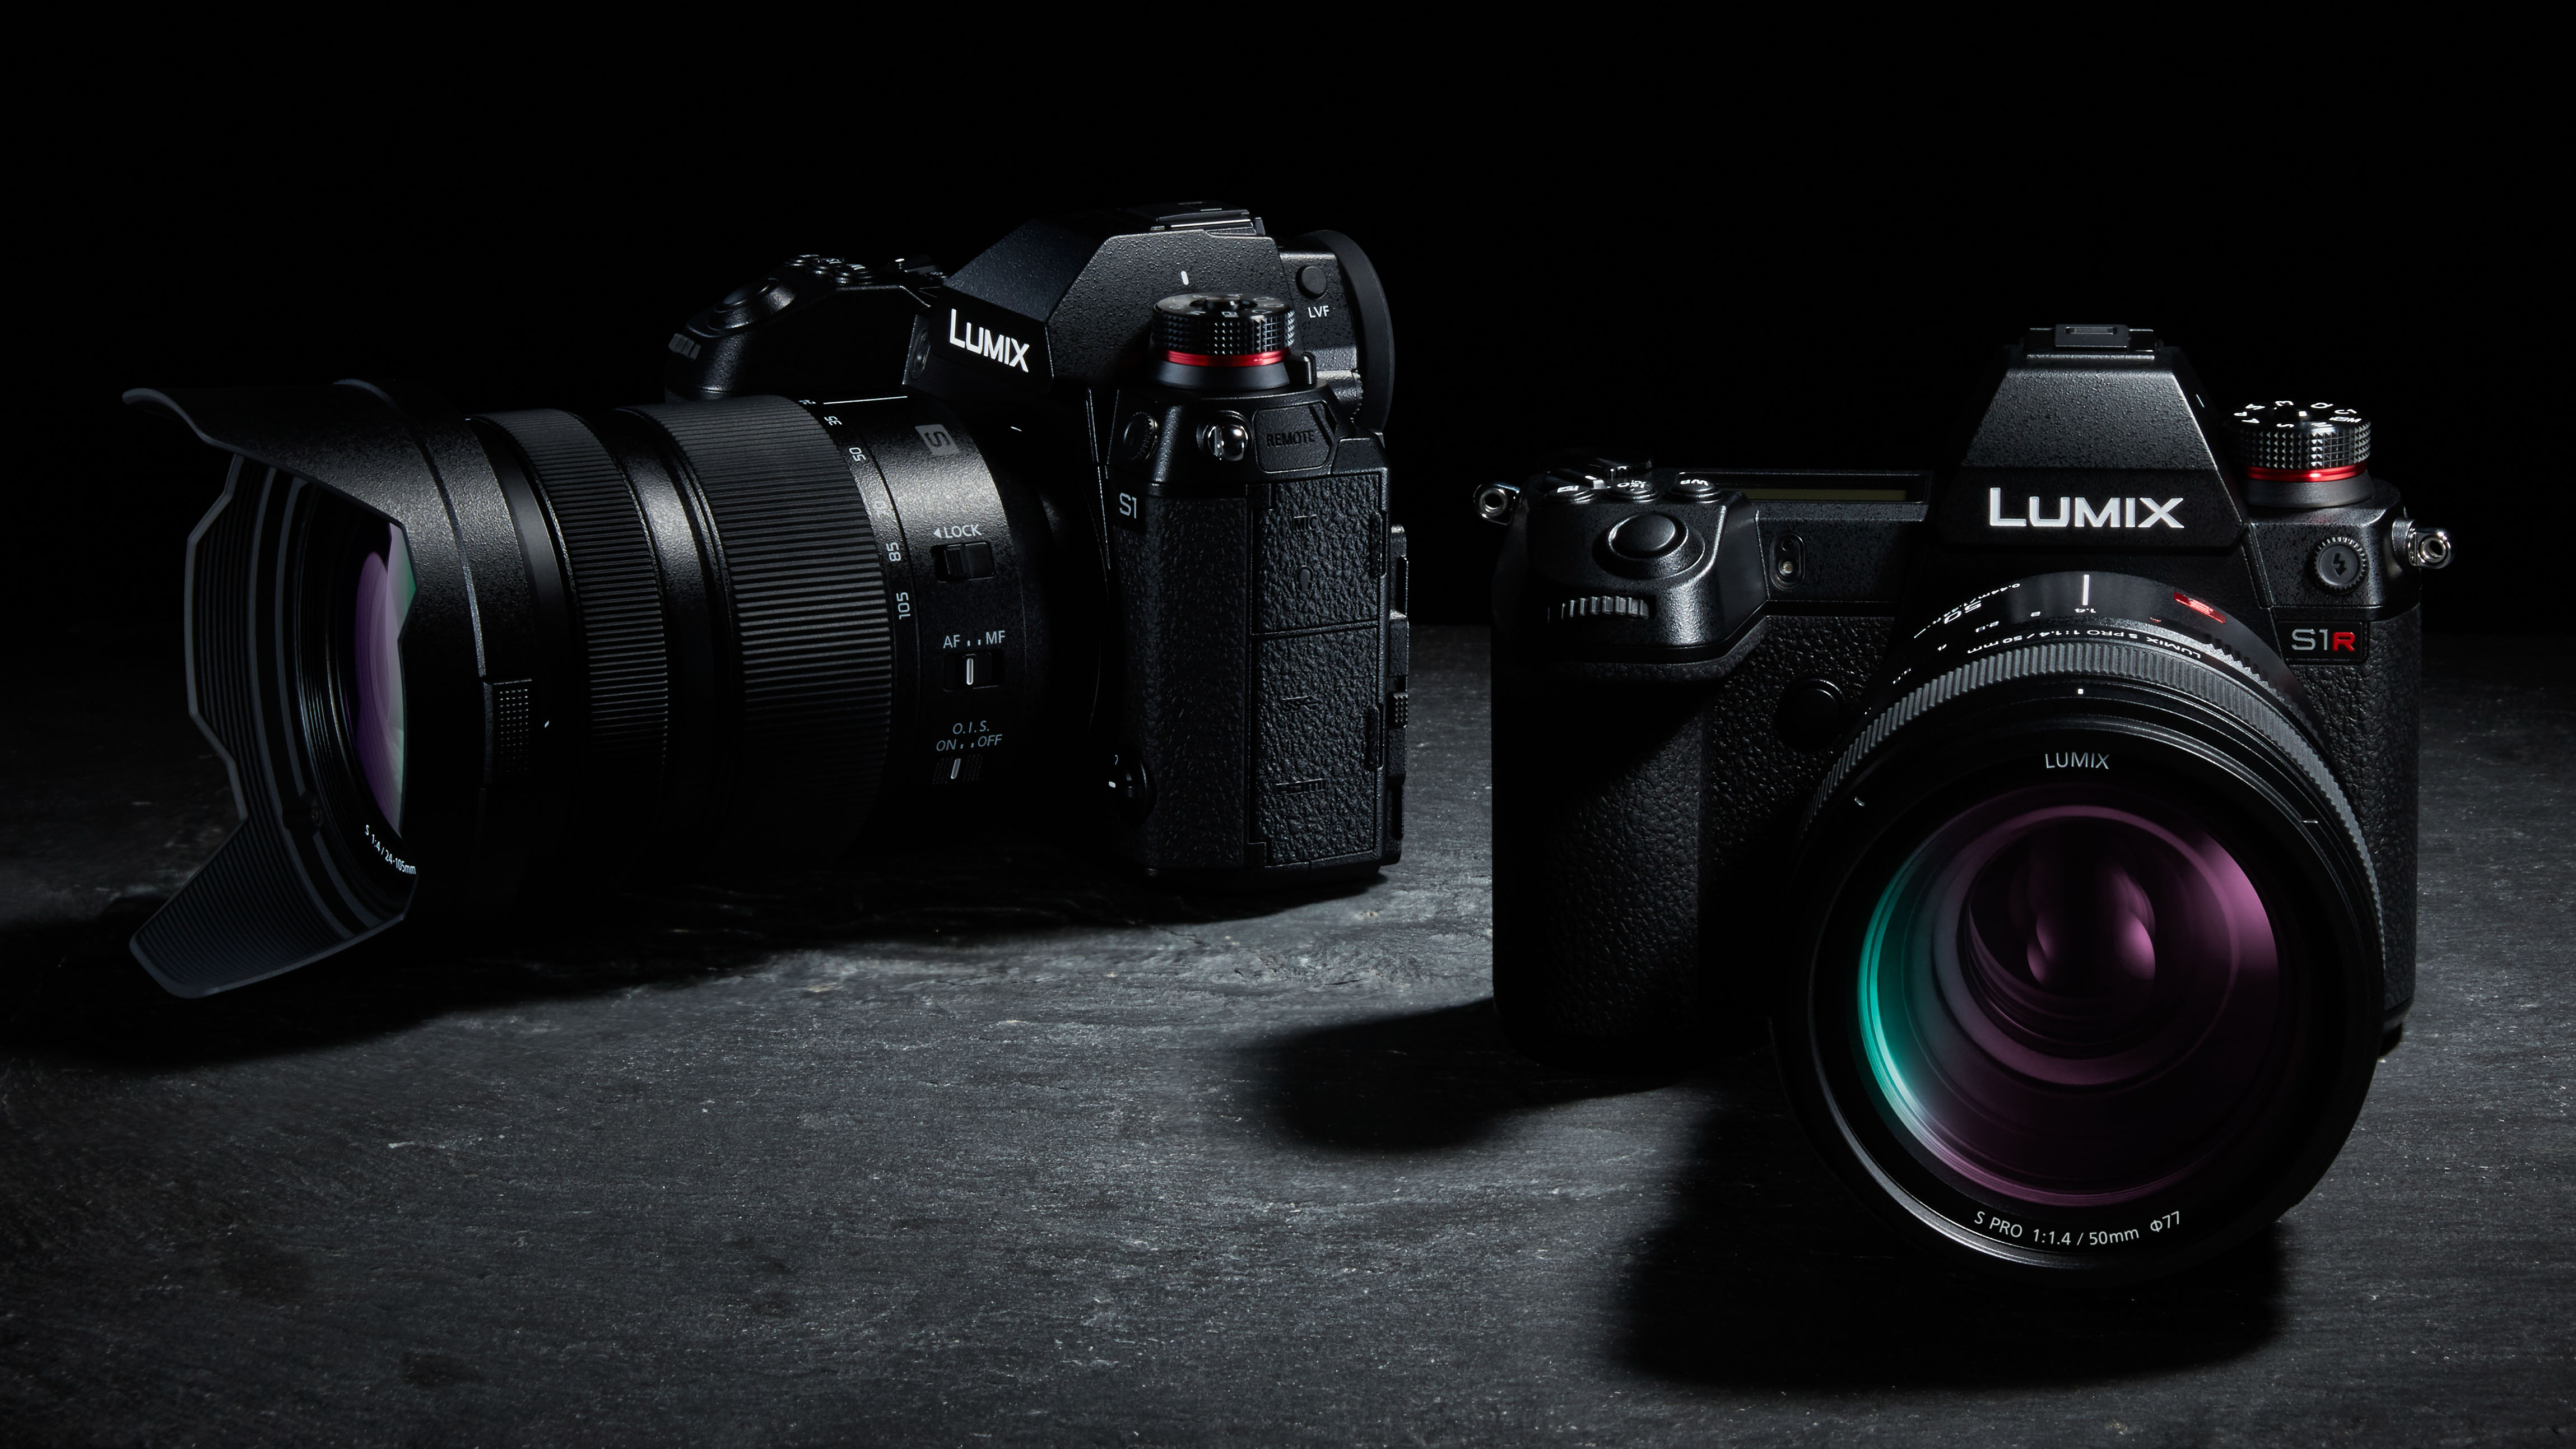 Panasonic tease at major new Lumix camera coming next week | Digital Camera World